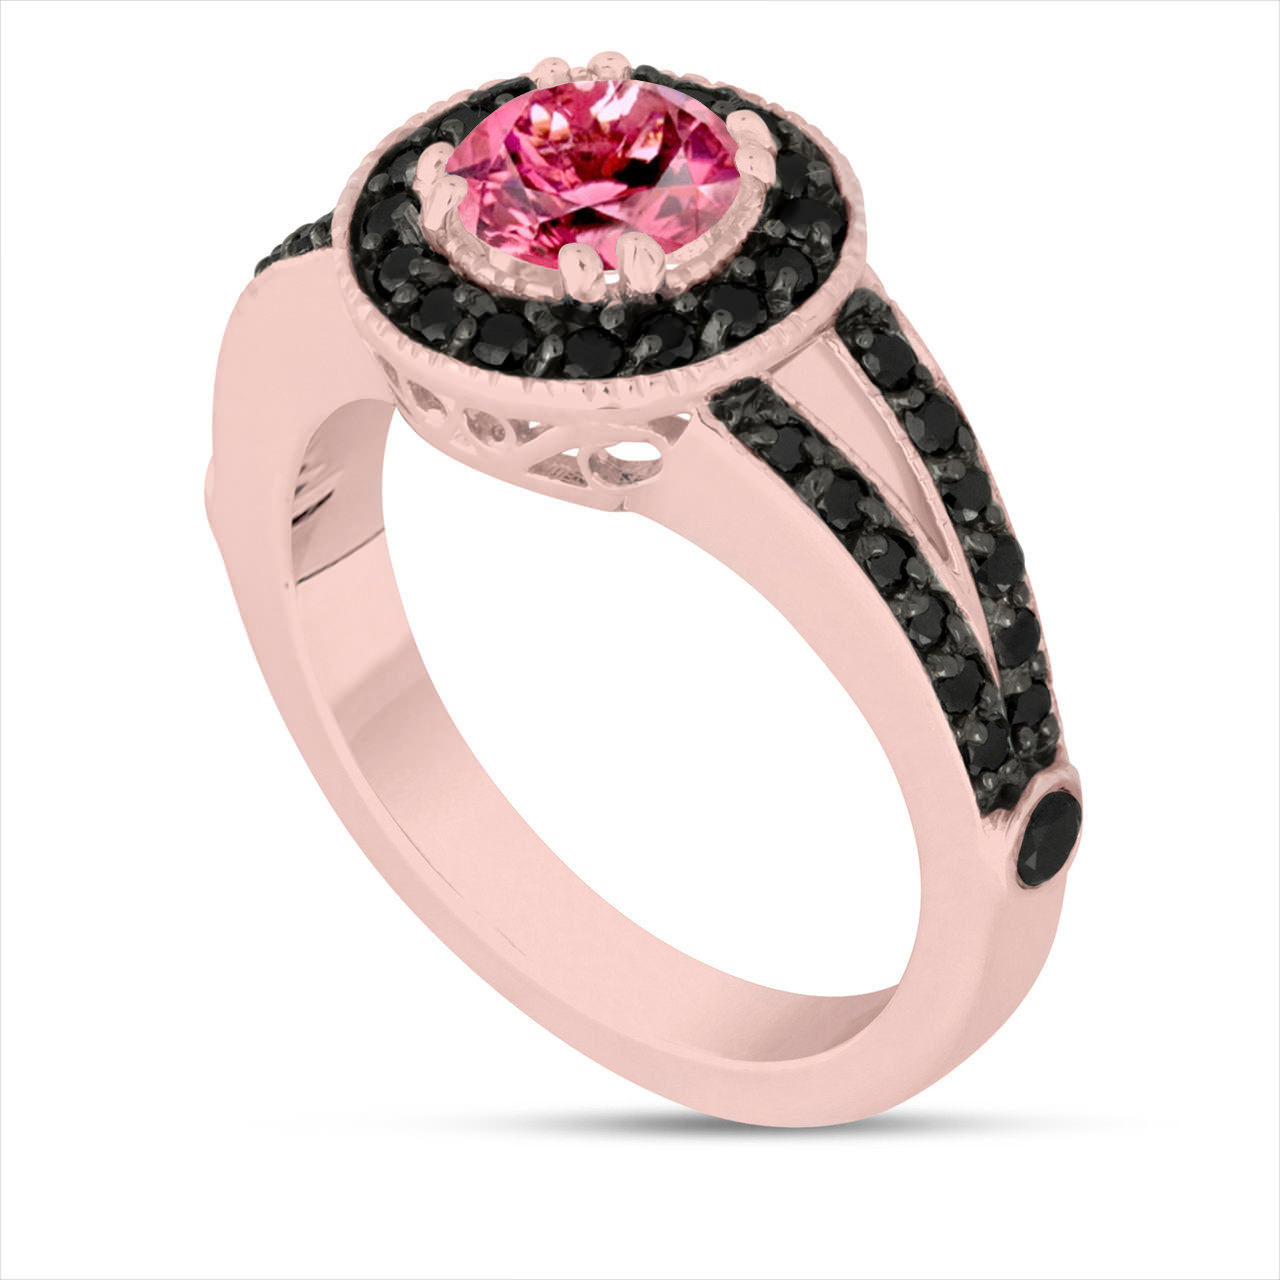 faldini stone products sapphire diamonds mirella rosa rings quadrado pink ring center gold